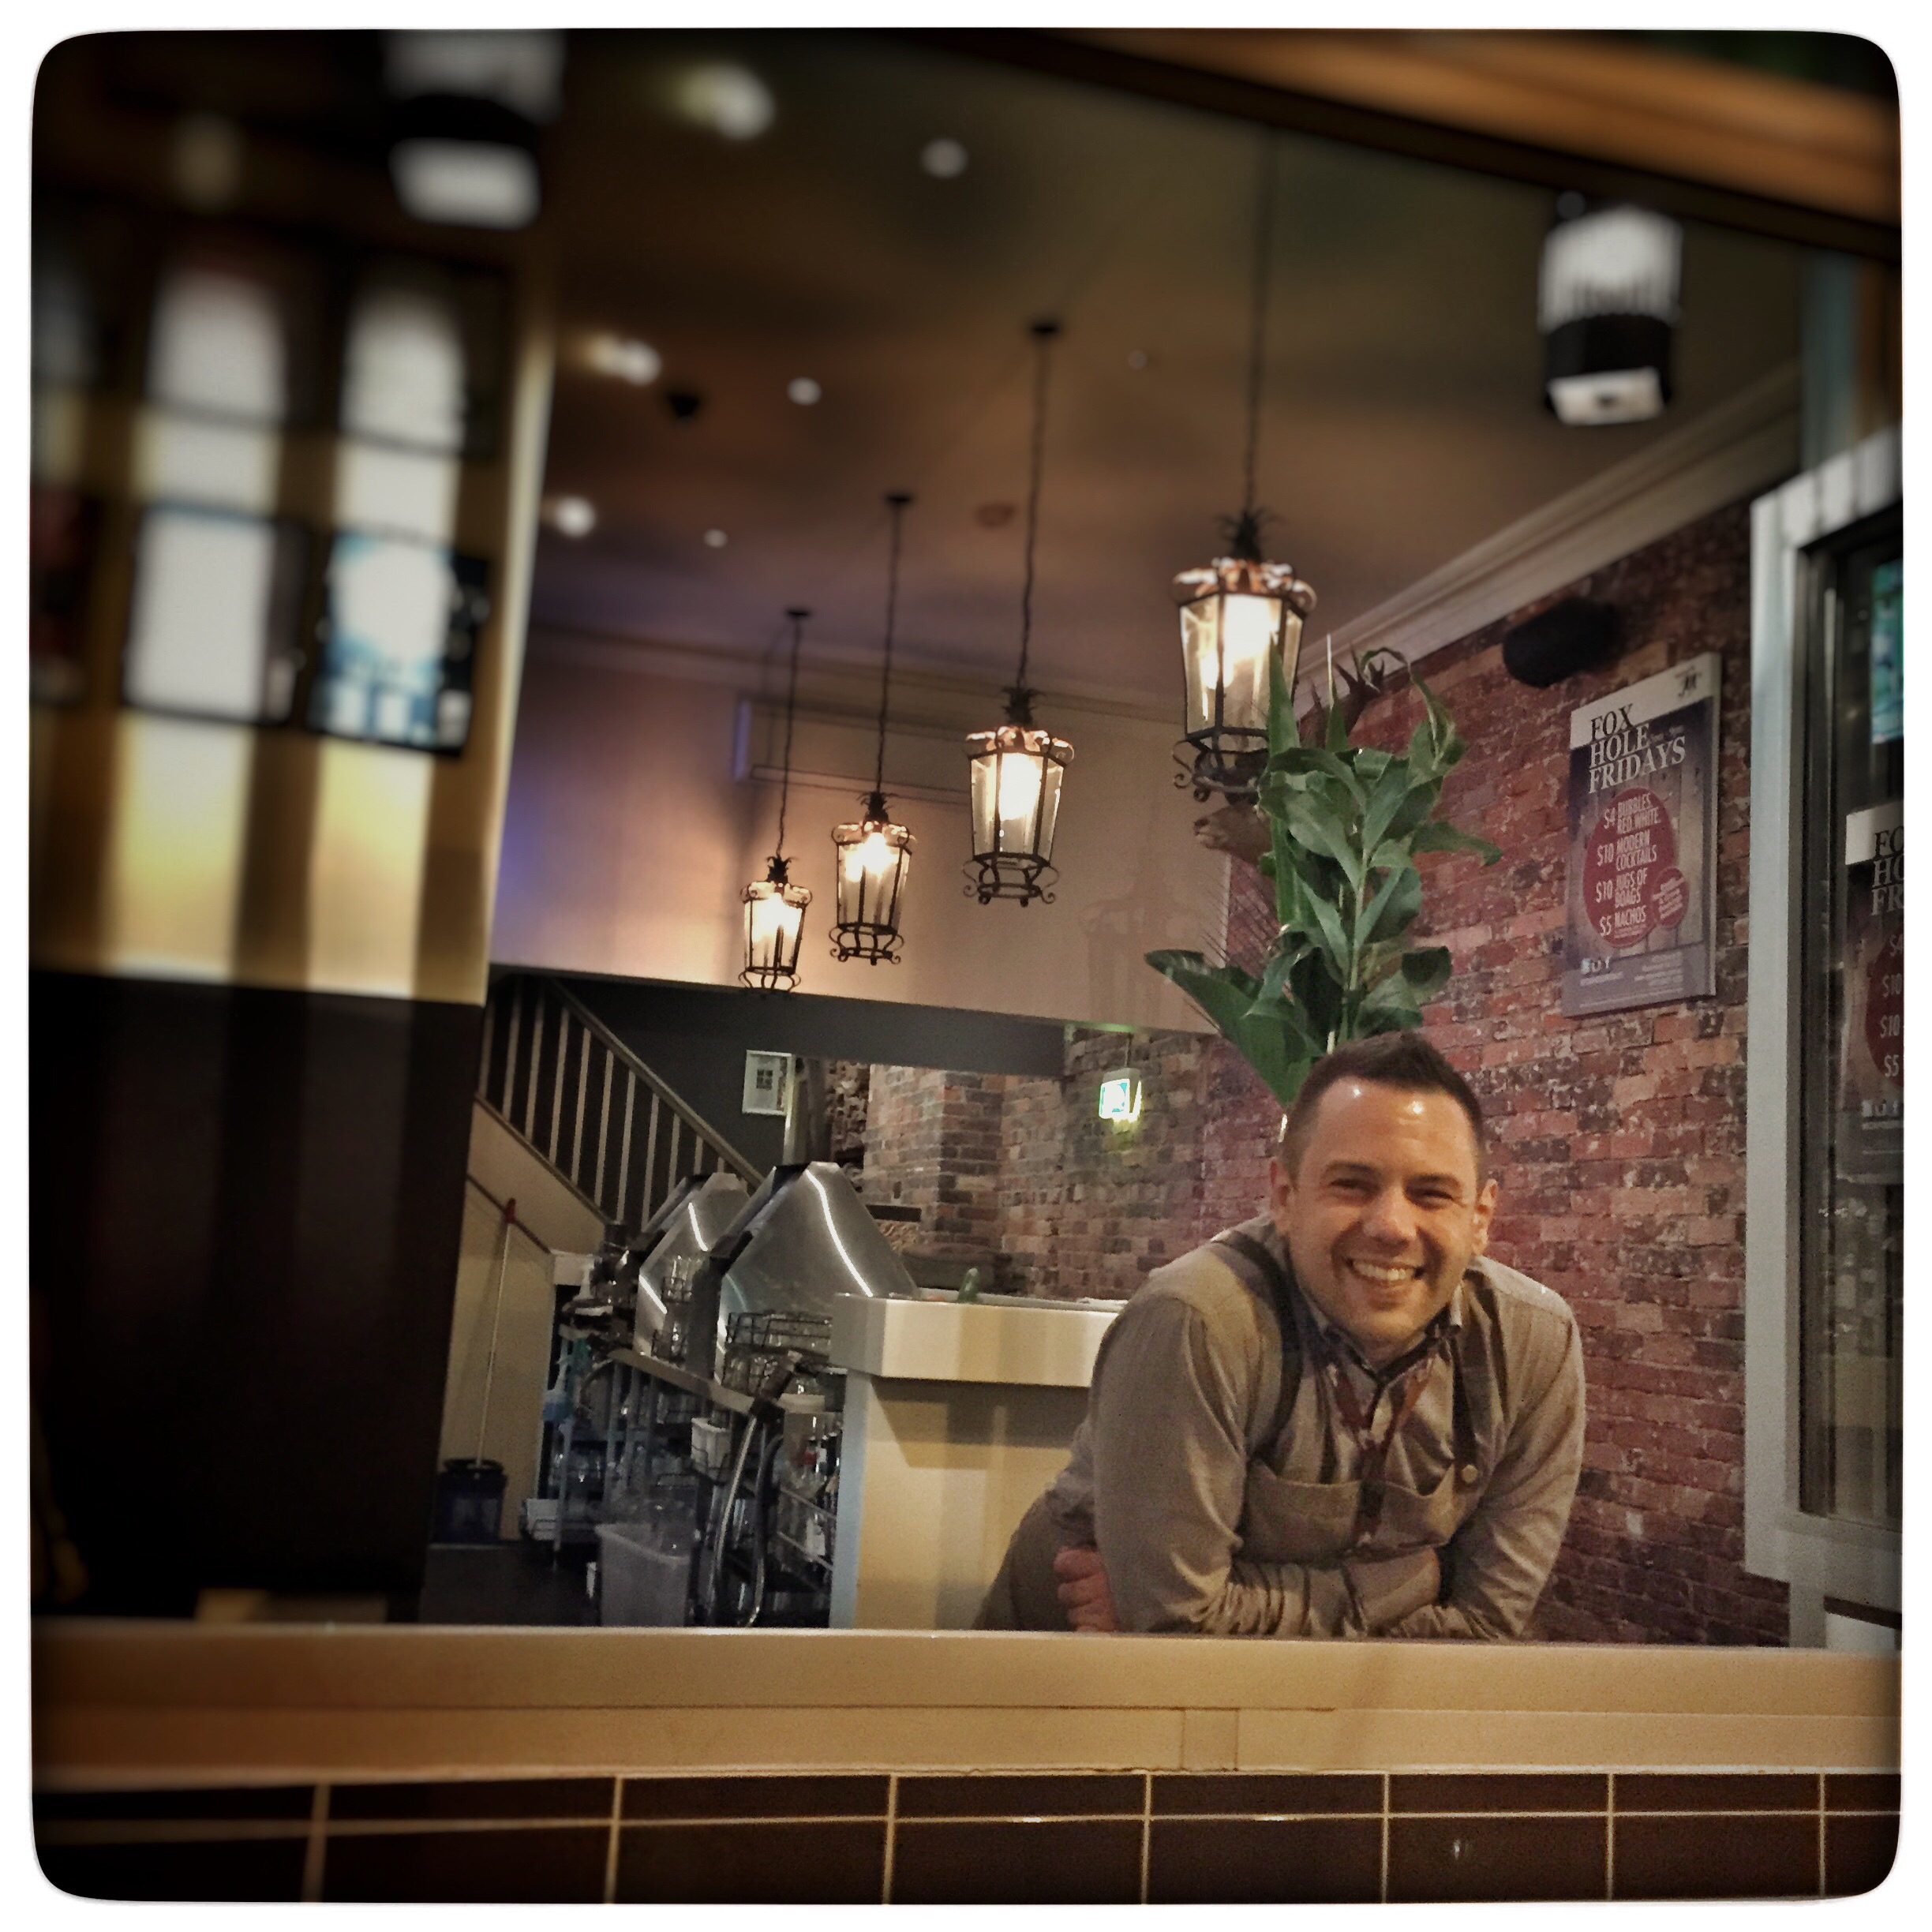 Day 1822. Happy Barman